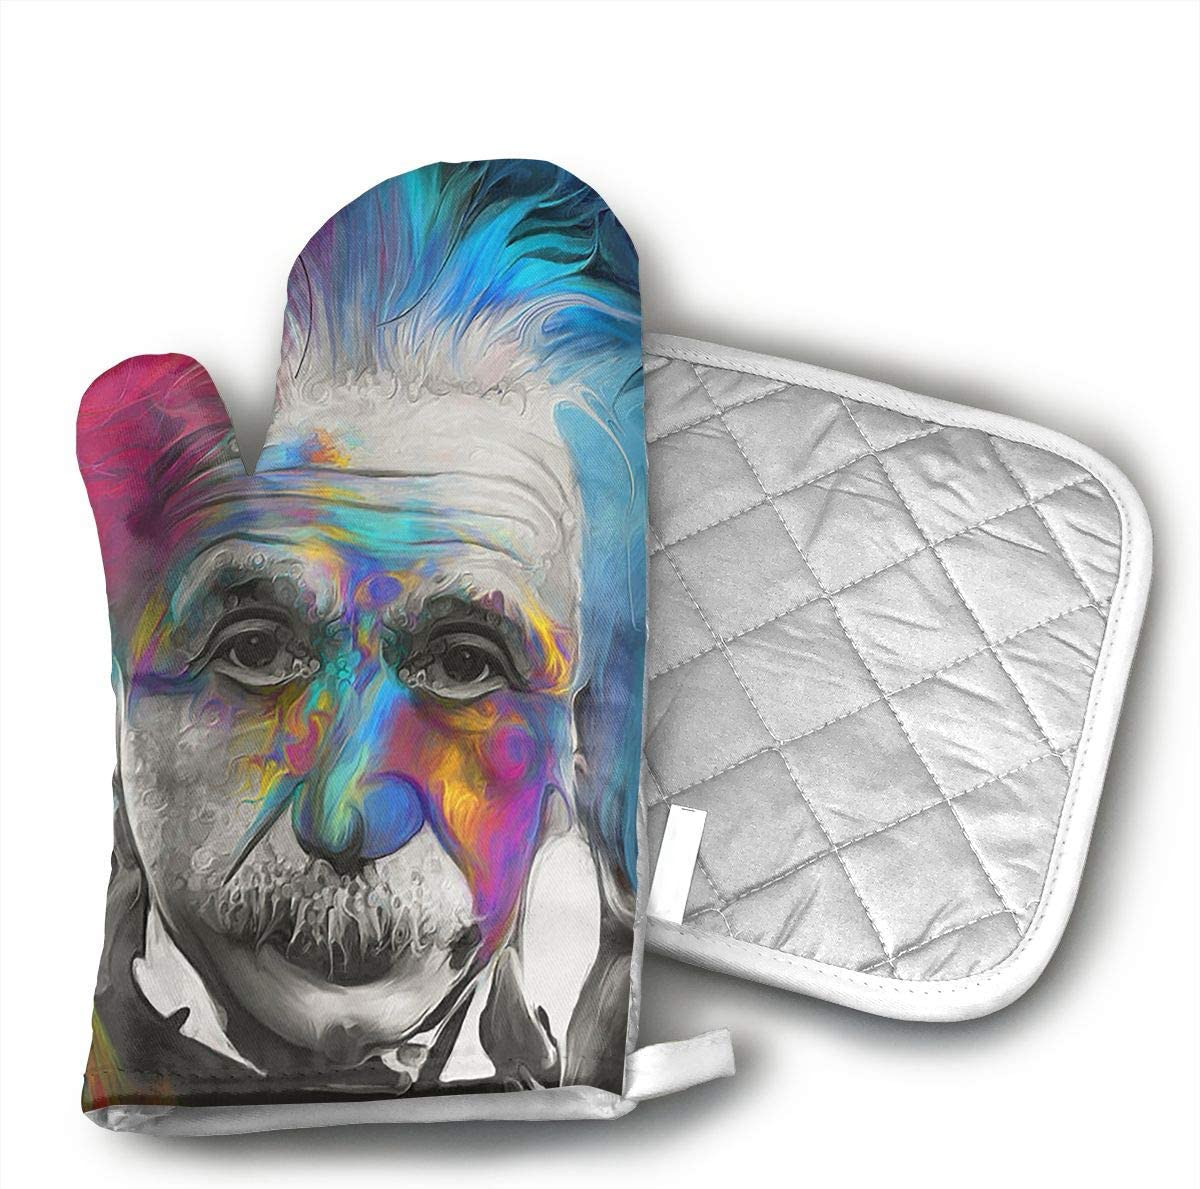 TRENDCAT Albert Einstein Art Oven Mitts and Potholders (2-Piece Sets) - Extra Long Professional Heat Resistant Pot Holder & Baking Gloves - Food Safe